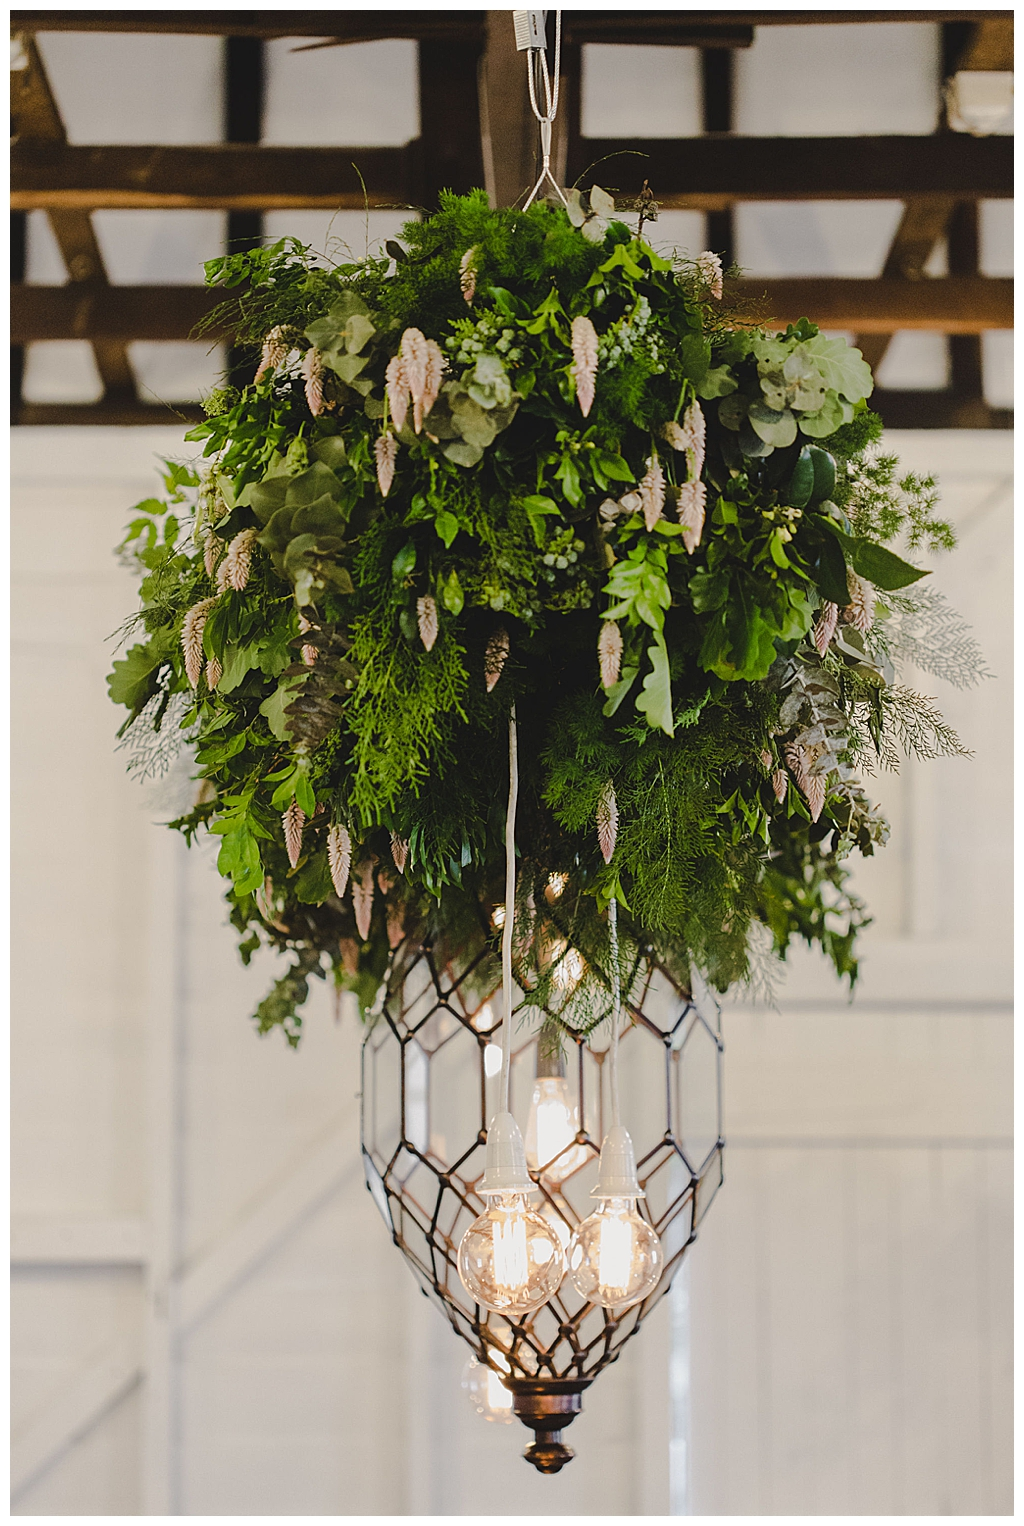 greenery-installation-wedding-decor